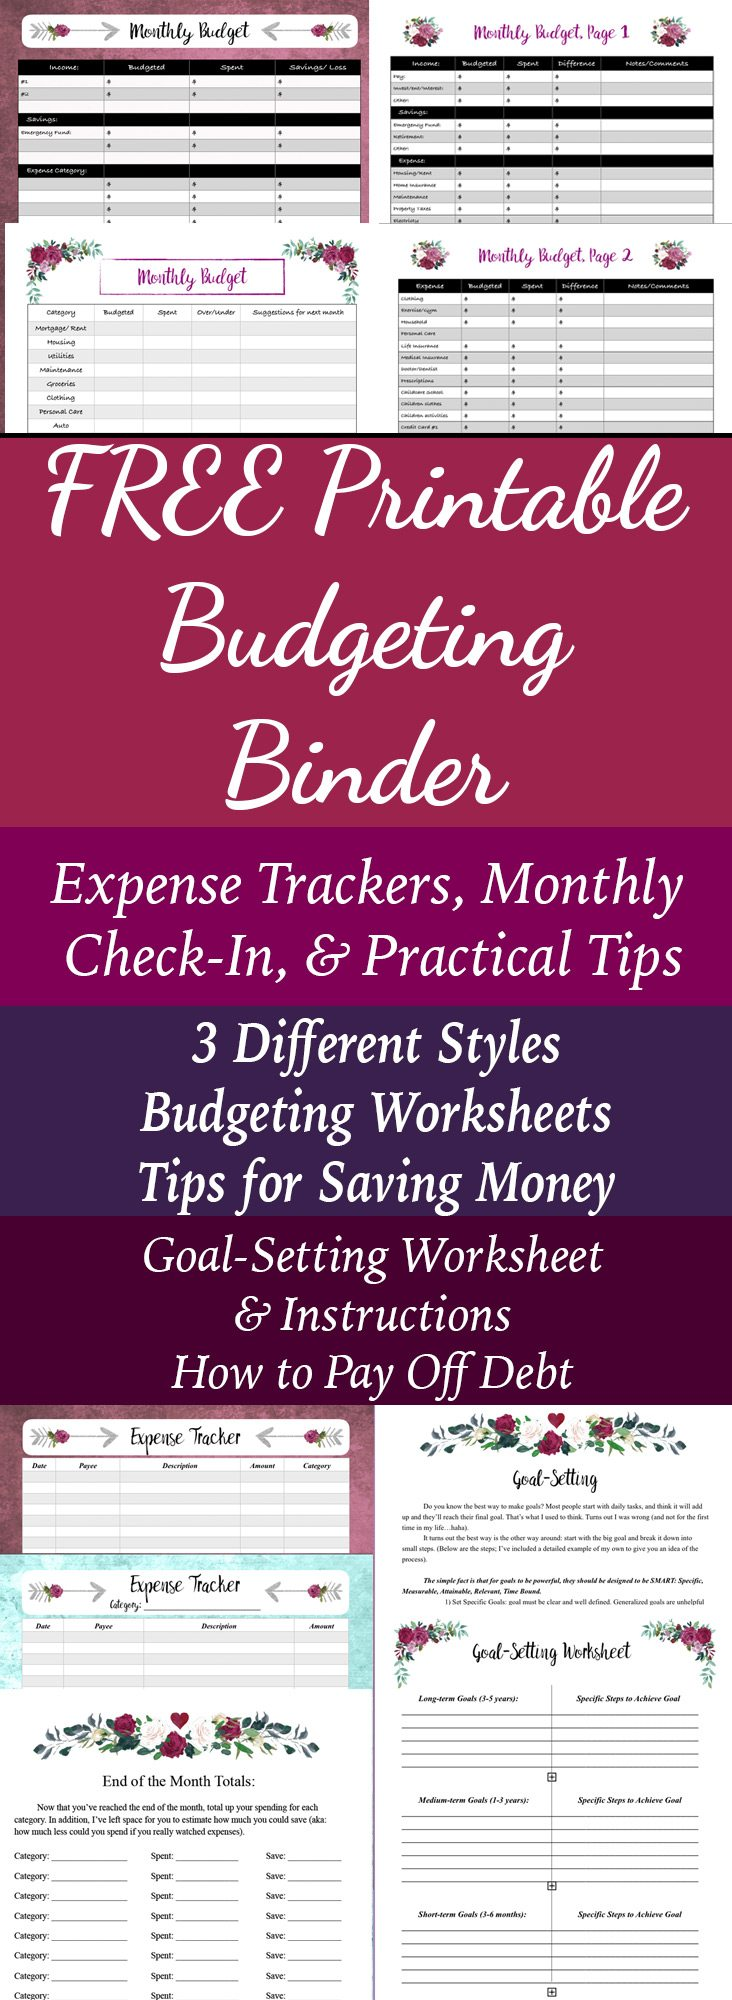 Free Printable Budgeting Binder! 15+ pages with expense trackers, budgeting, goal-setting, practical tips for saving money & more.